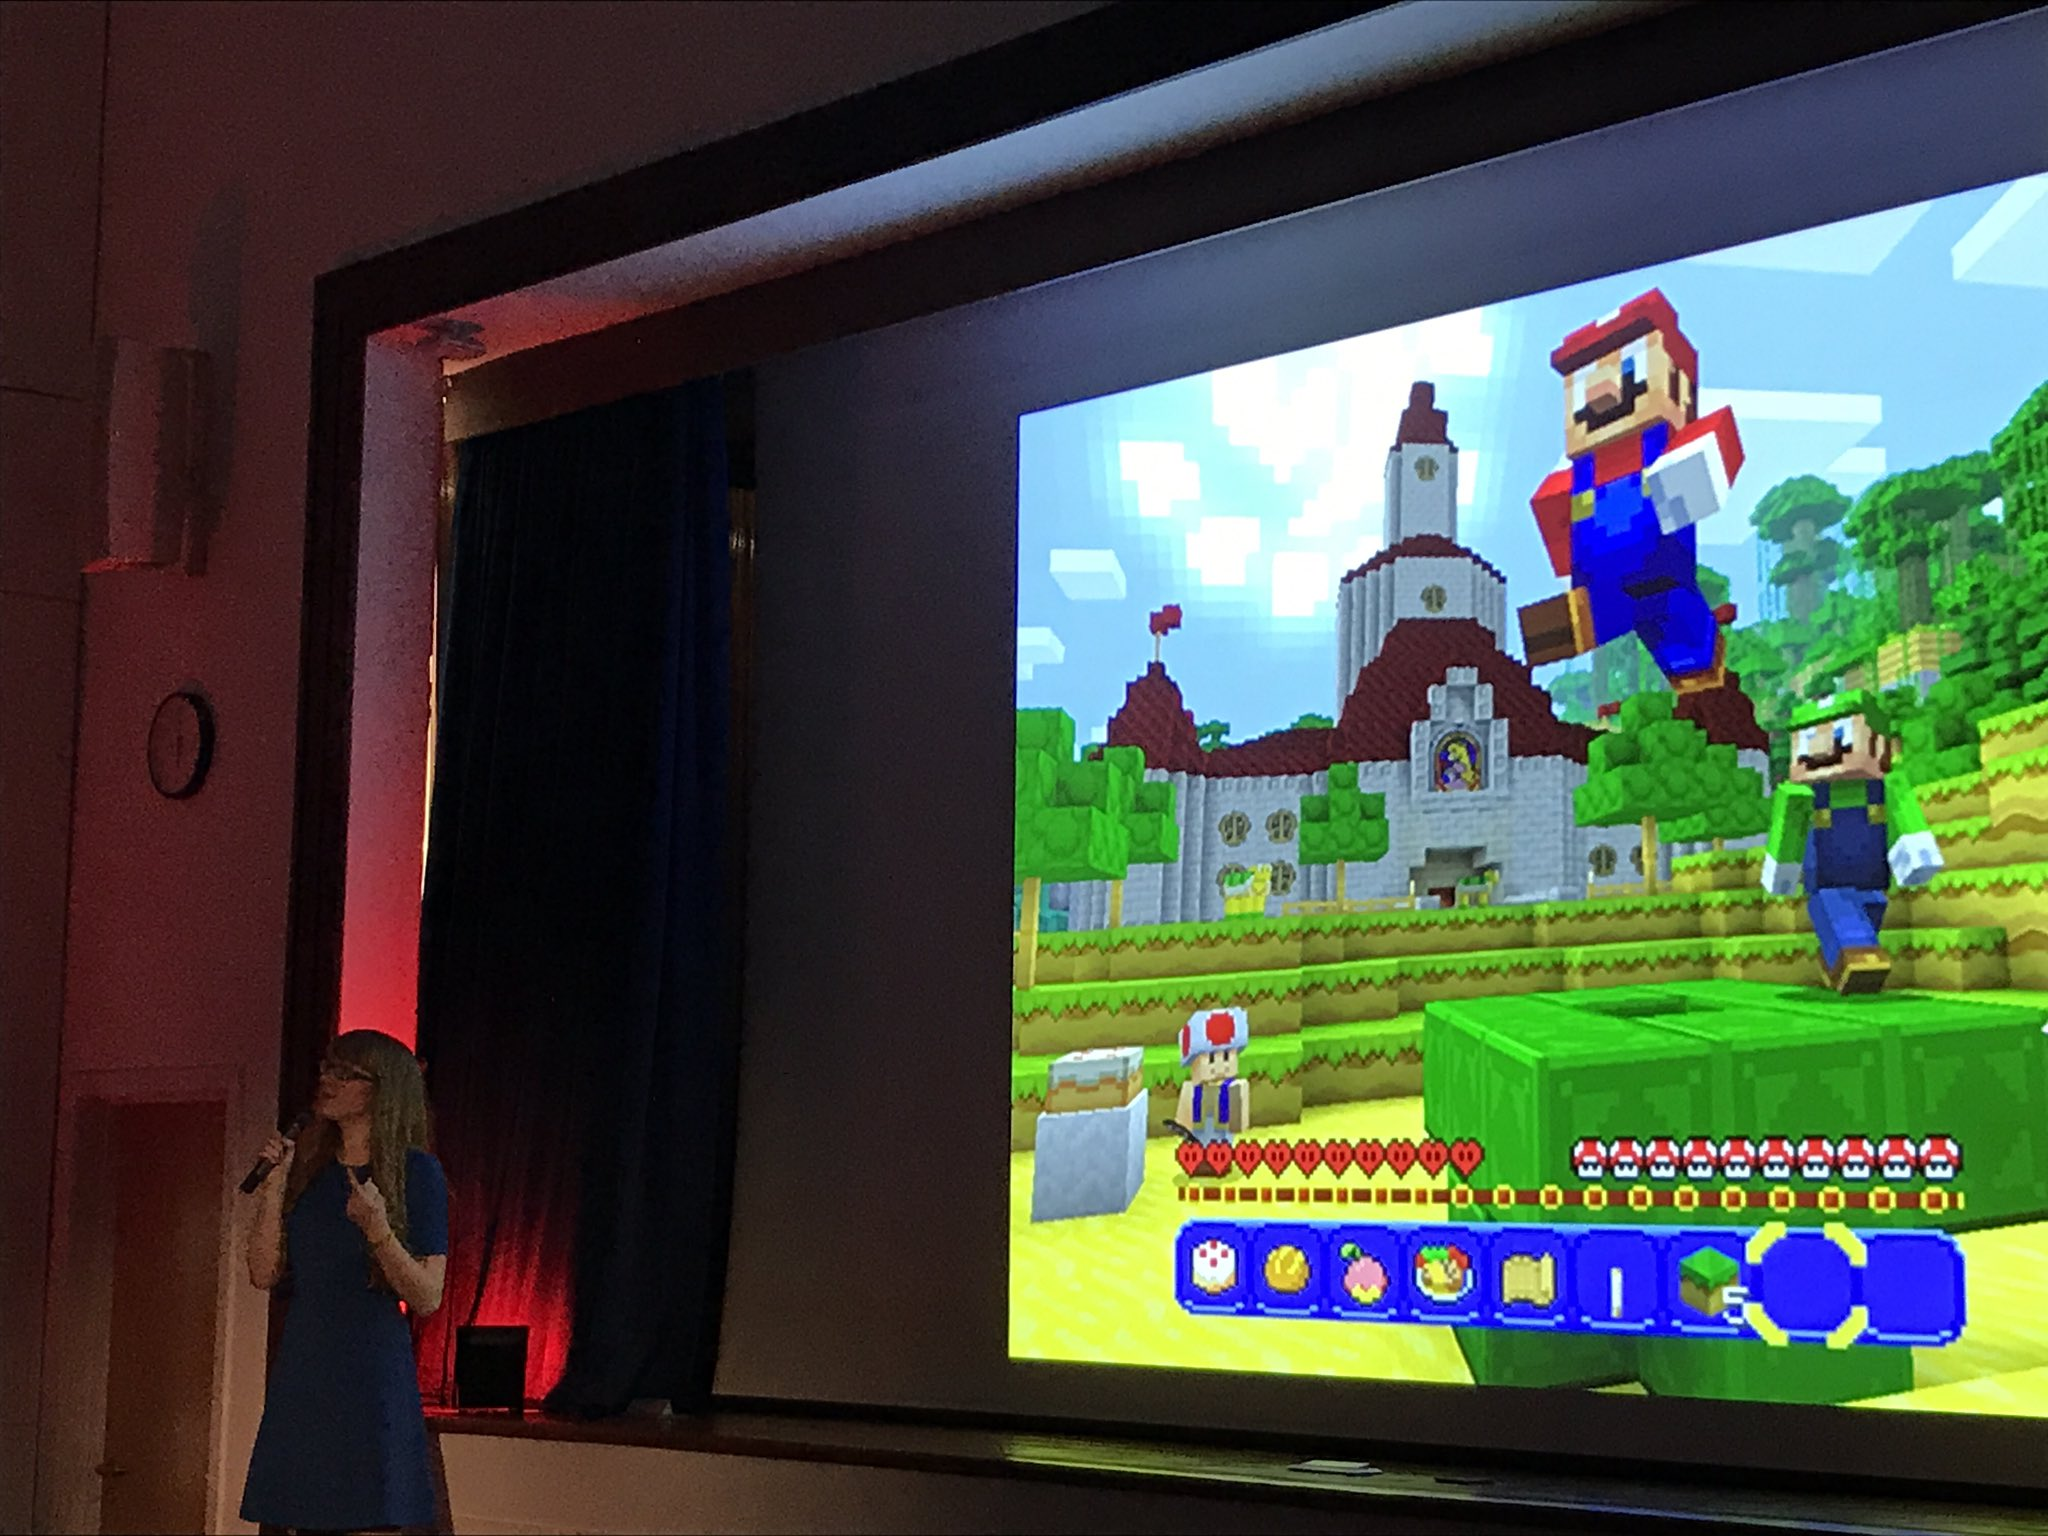 Don't fear your mistakes - @JessHider at #GamesPK #AbertayGames20 https://t.co/owRCpzY0Mm